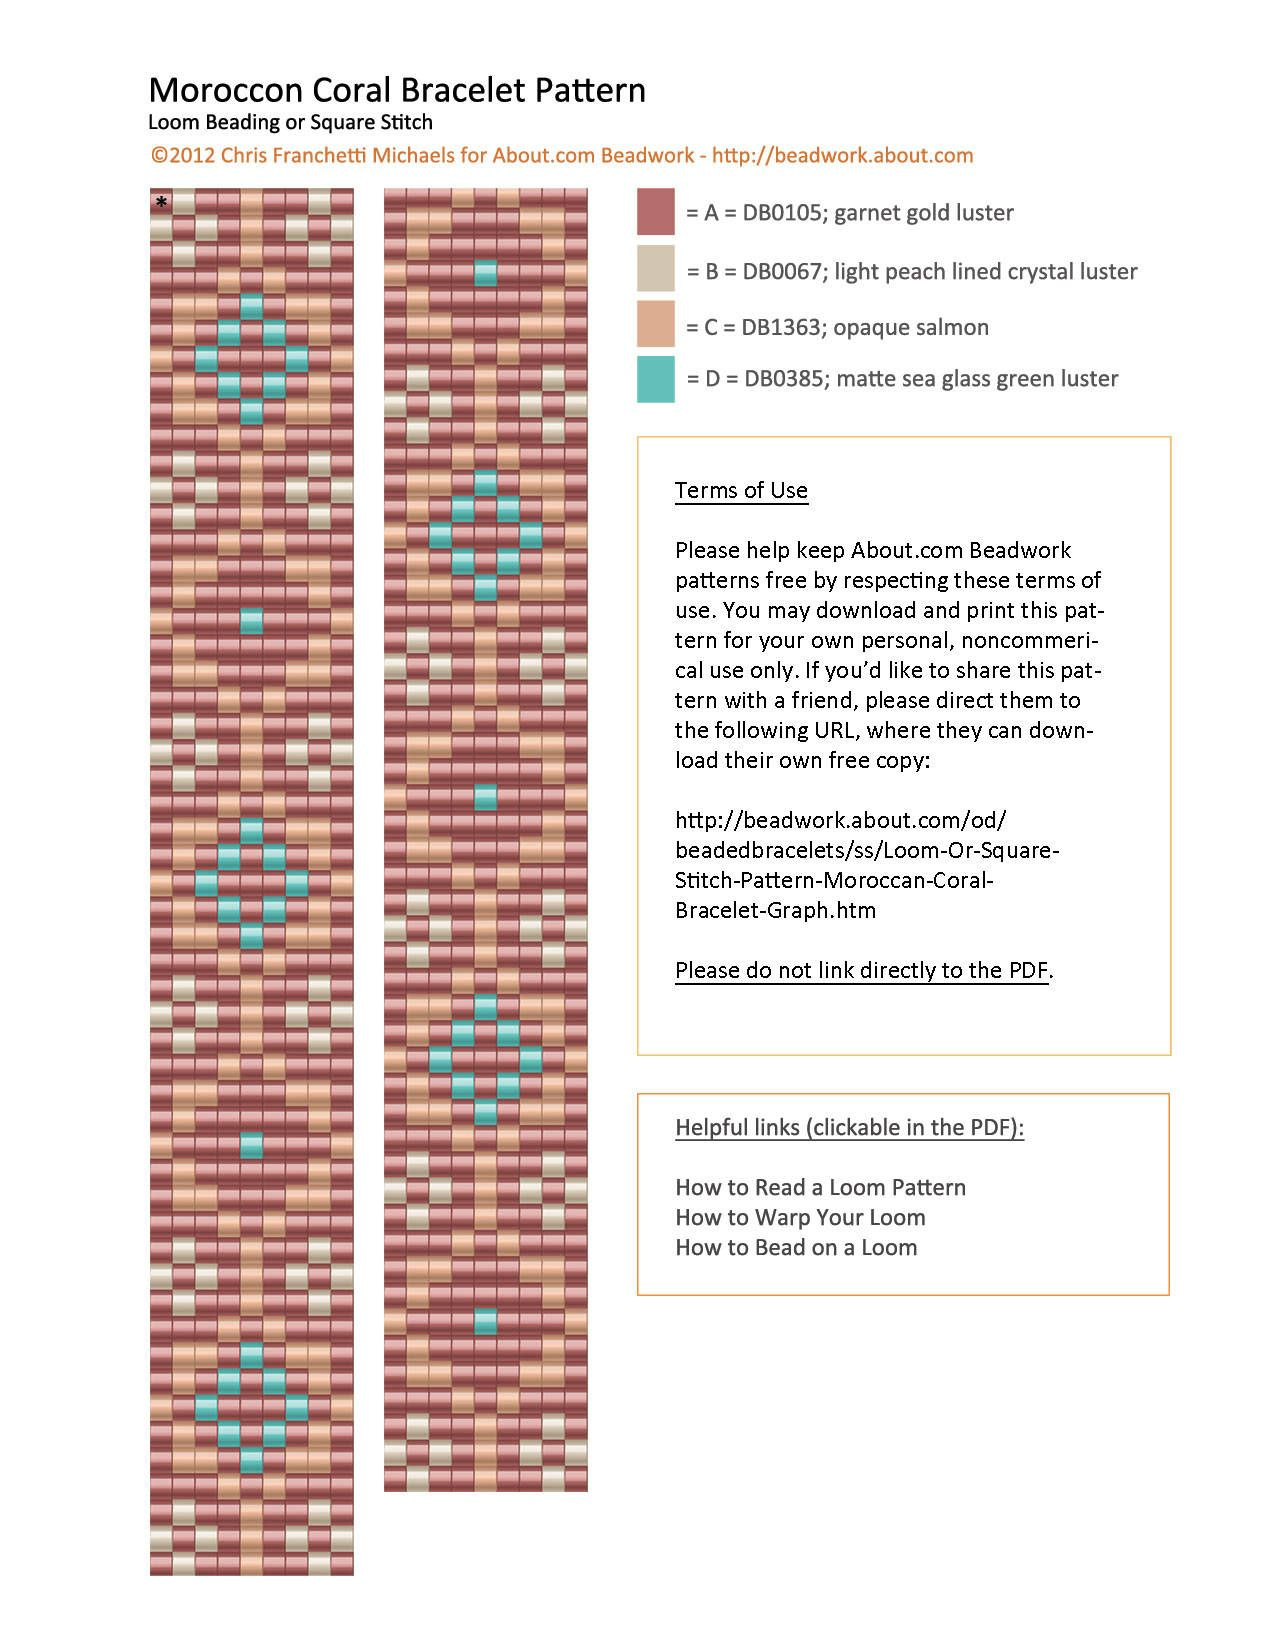 Loom or Square Stitch Pattern - Moroccan Coral Bracelet Graph ...